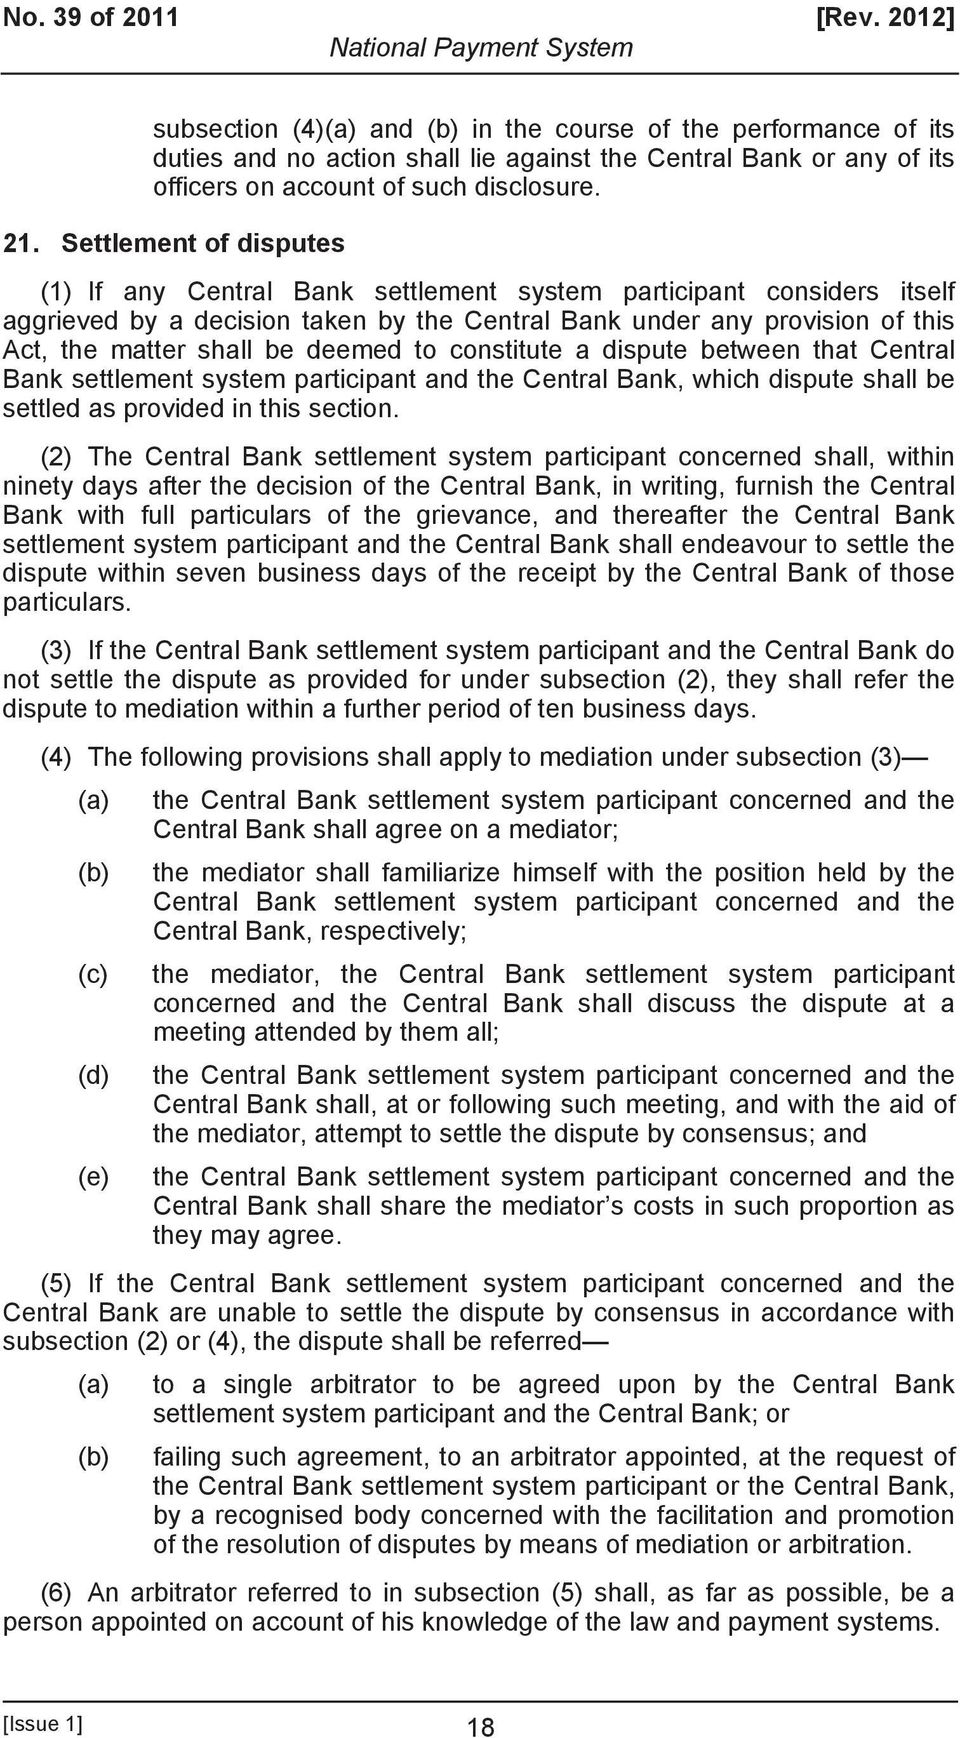 Settlement of disputes (1) If any Central Bank settlement system participant considers itself aggrieved by a decision taken by the Central Bank under any provision of this Act, the matter shall be